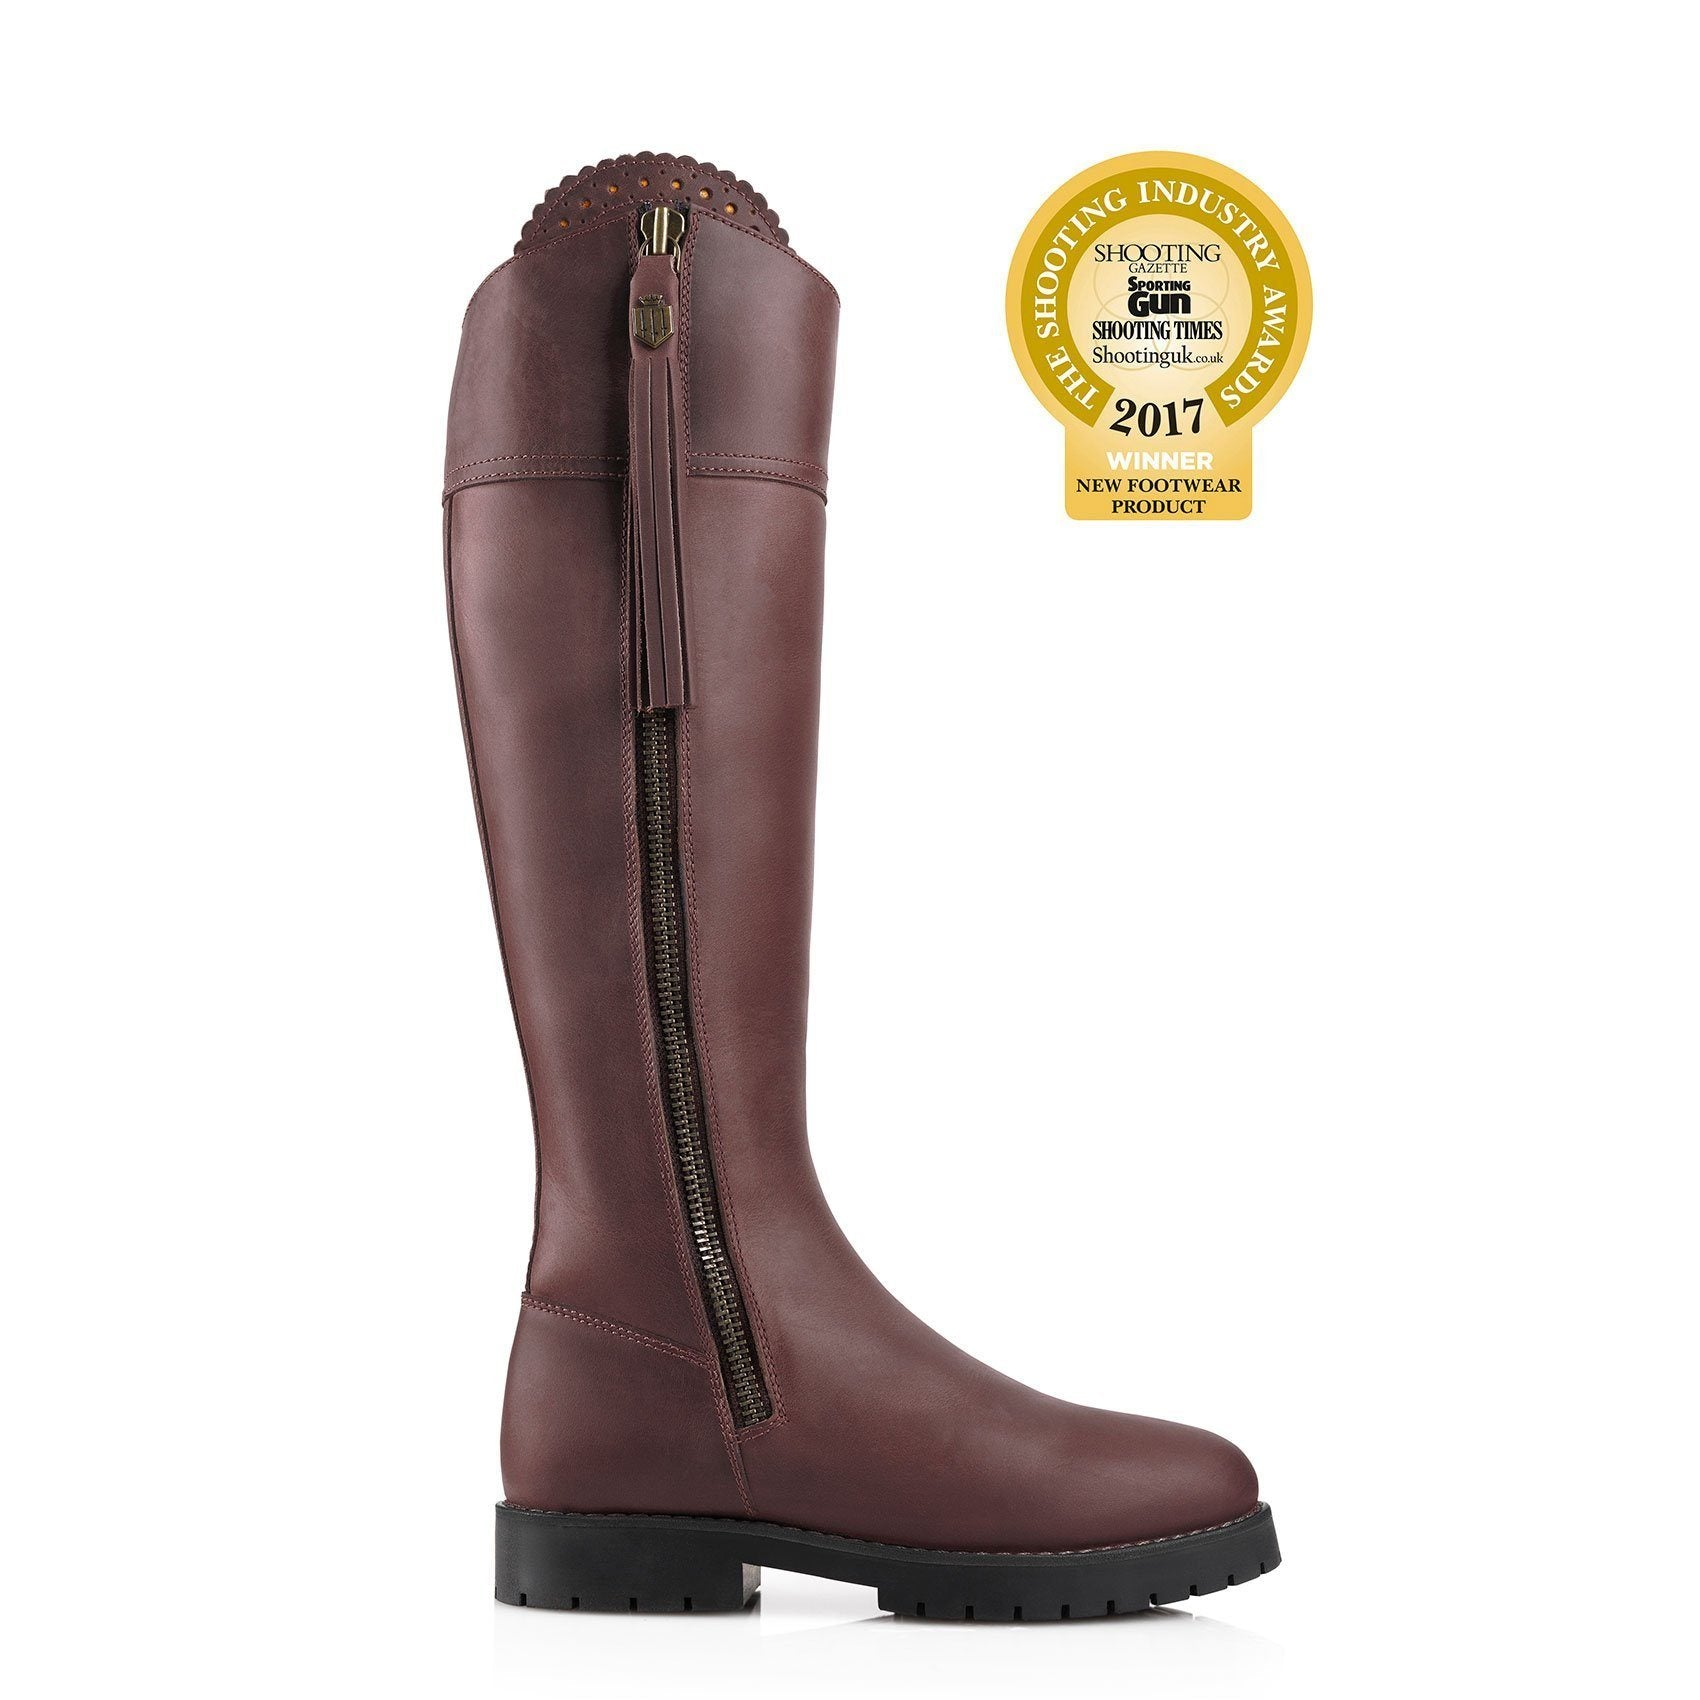 Imperial Explorer II Leather Boot, mahogany/mørk brun læder